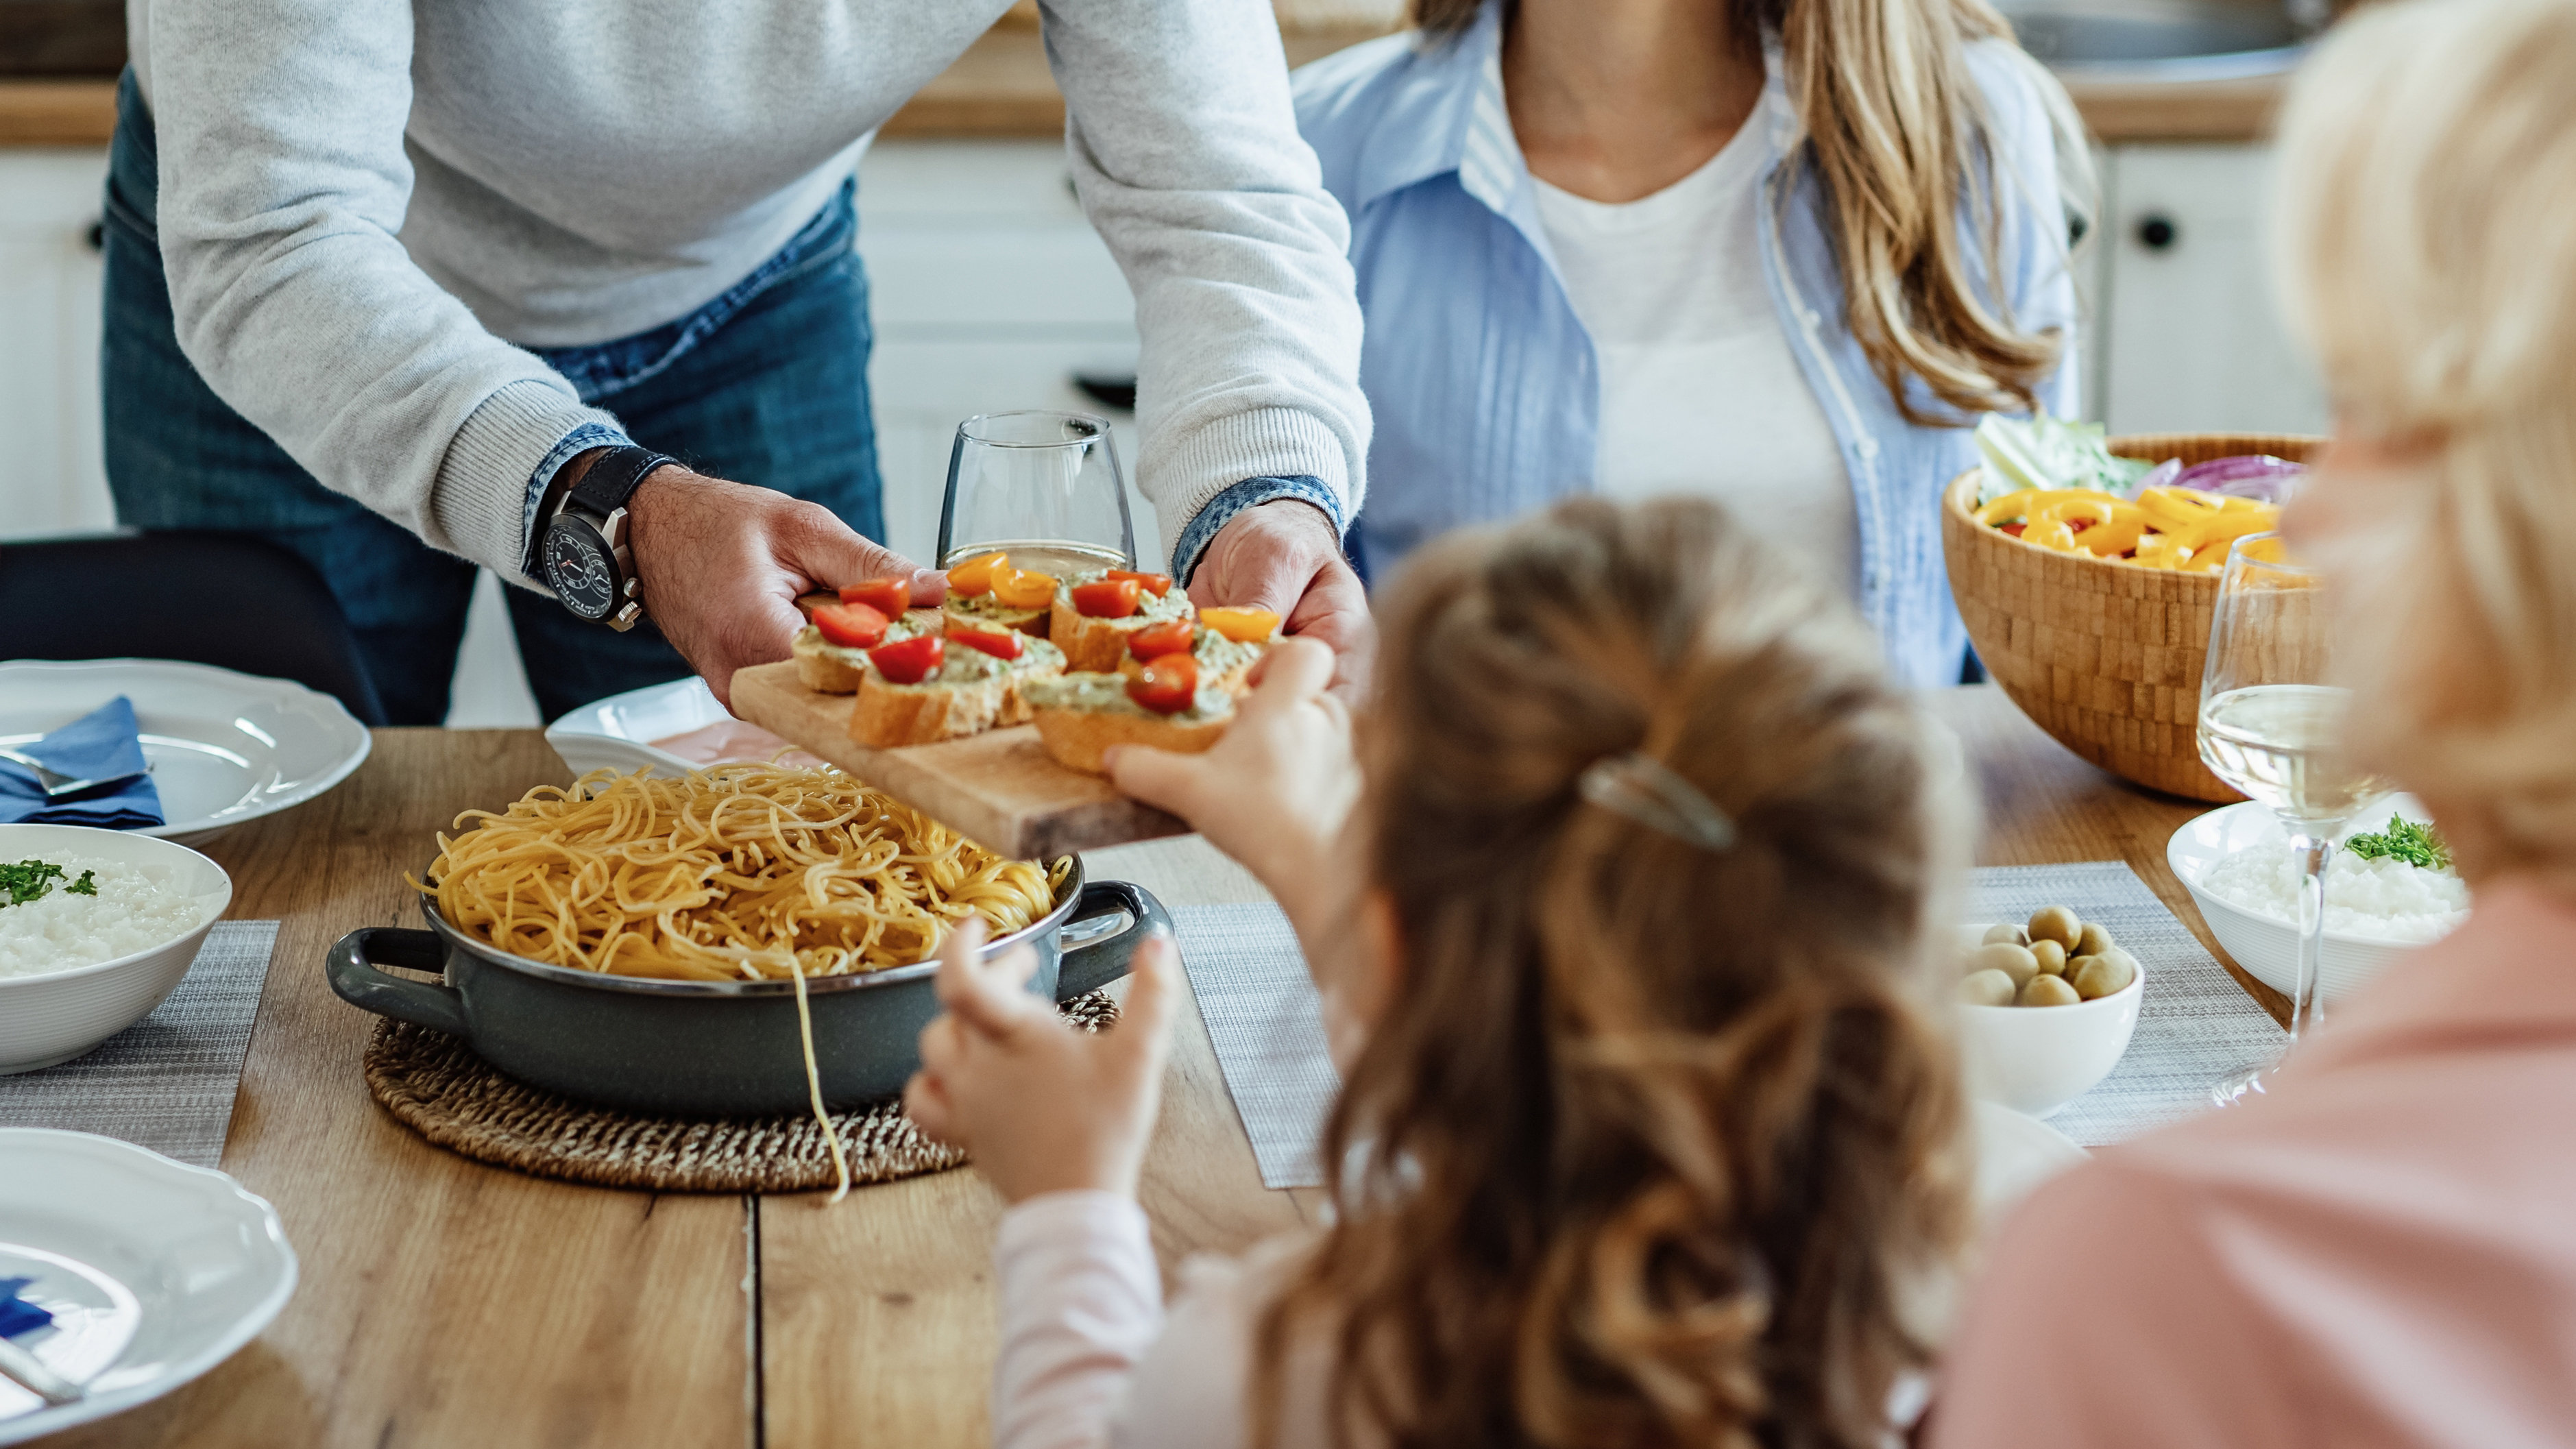 Healthy eating for kids: How to talk to them about good food habits